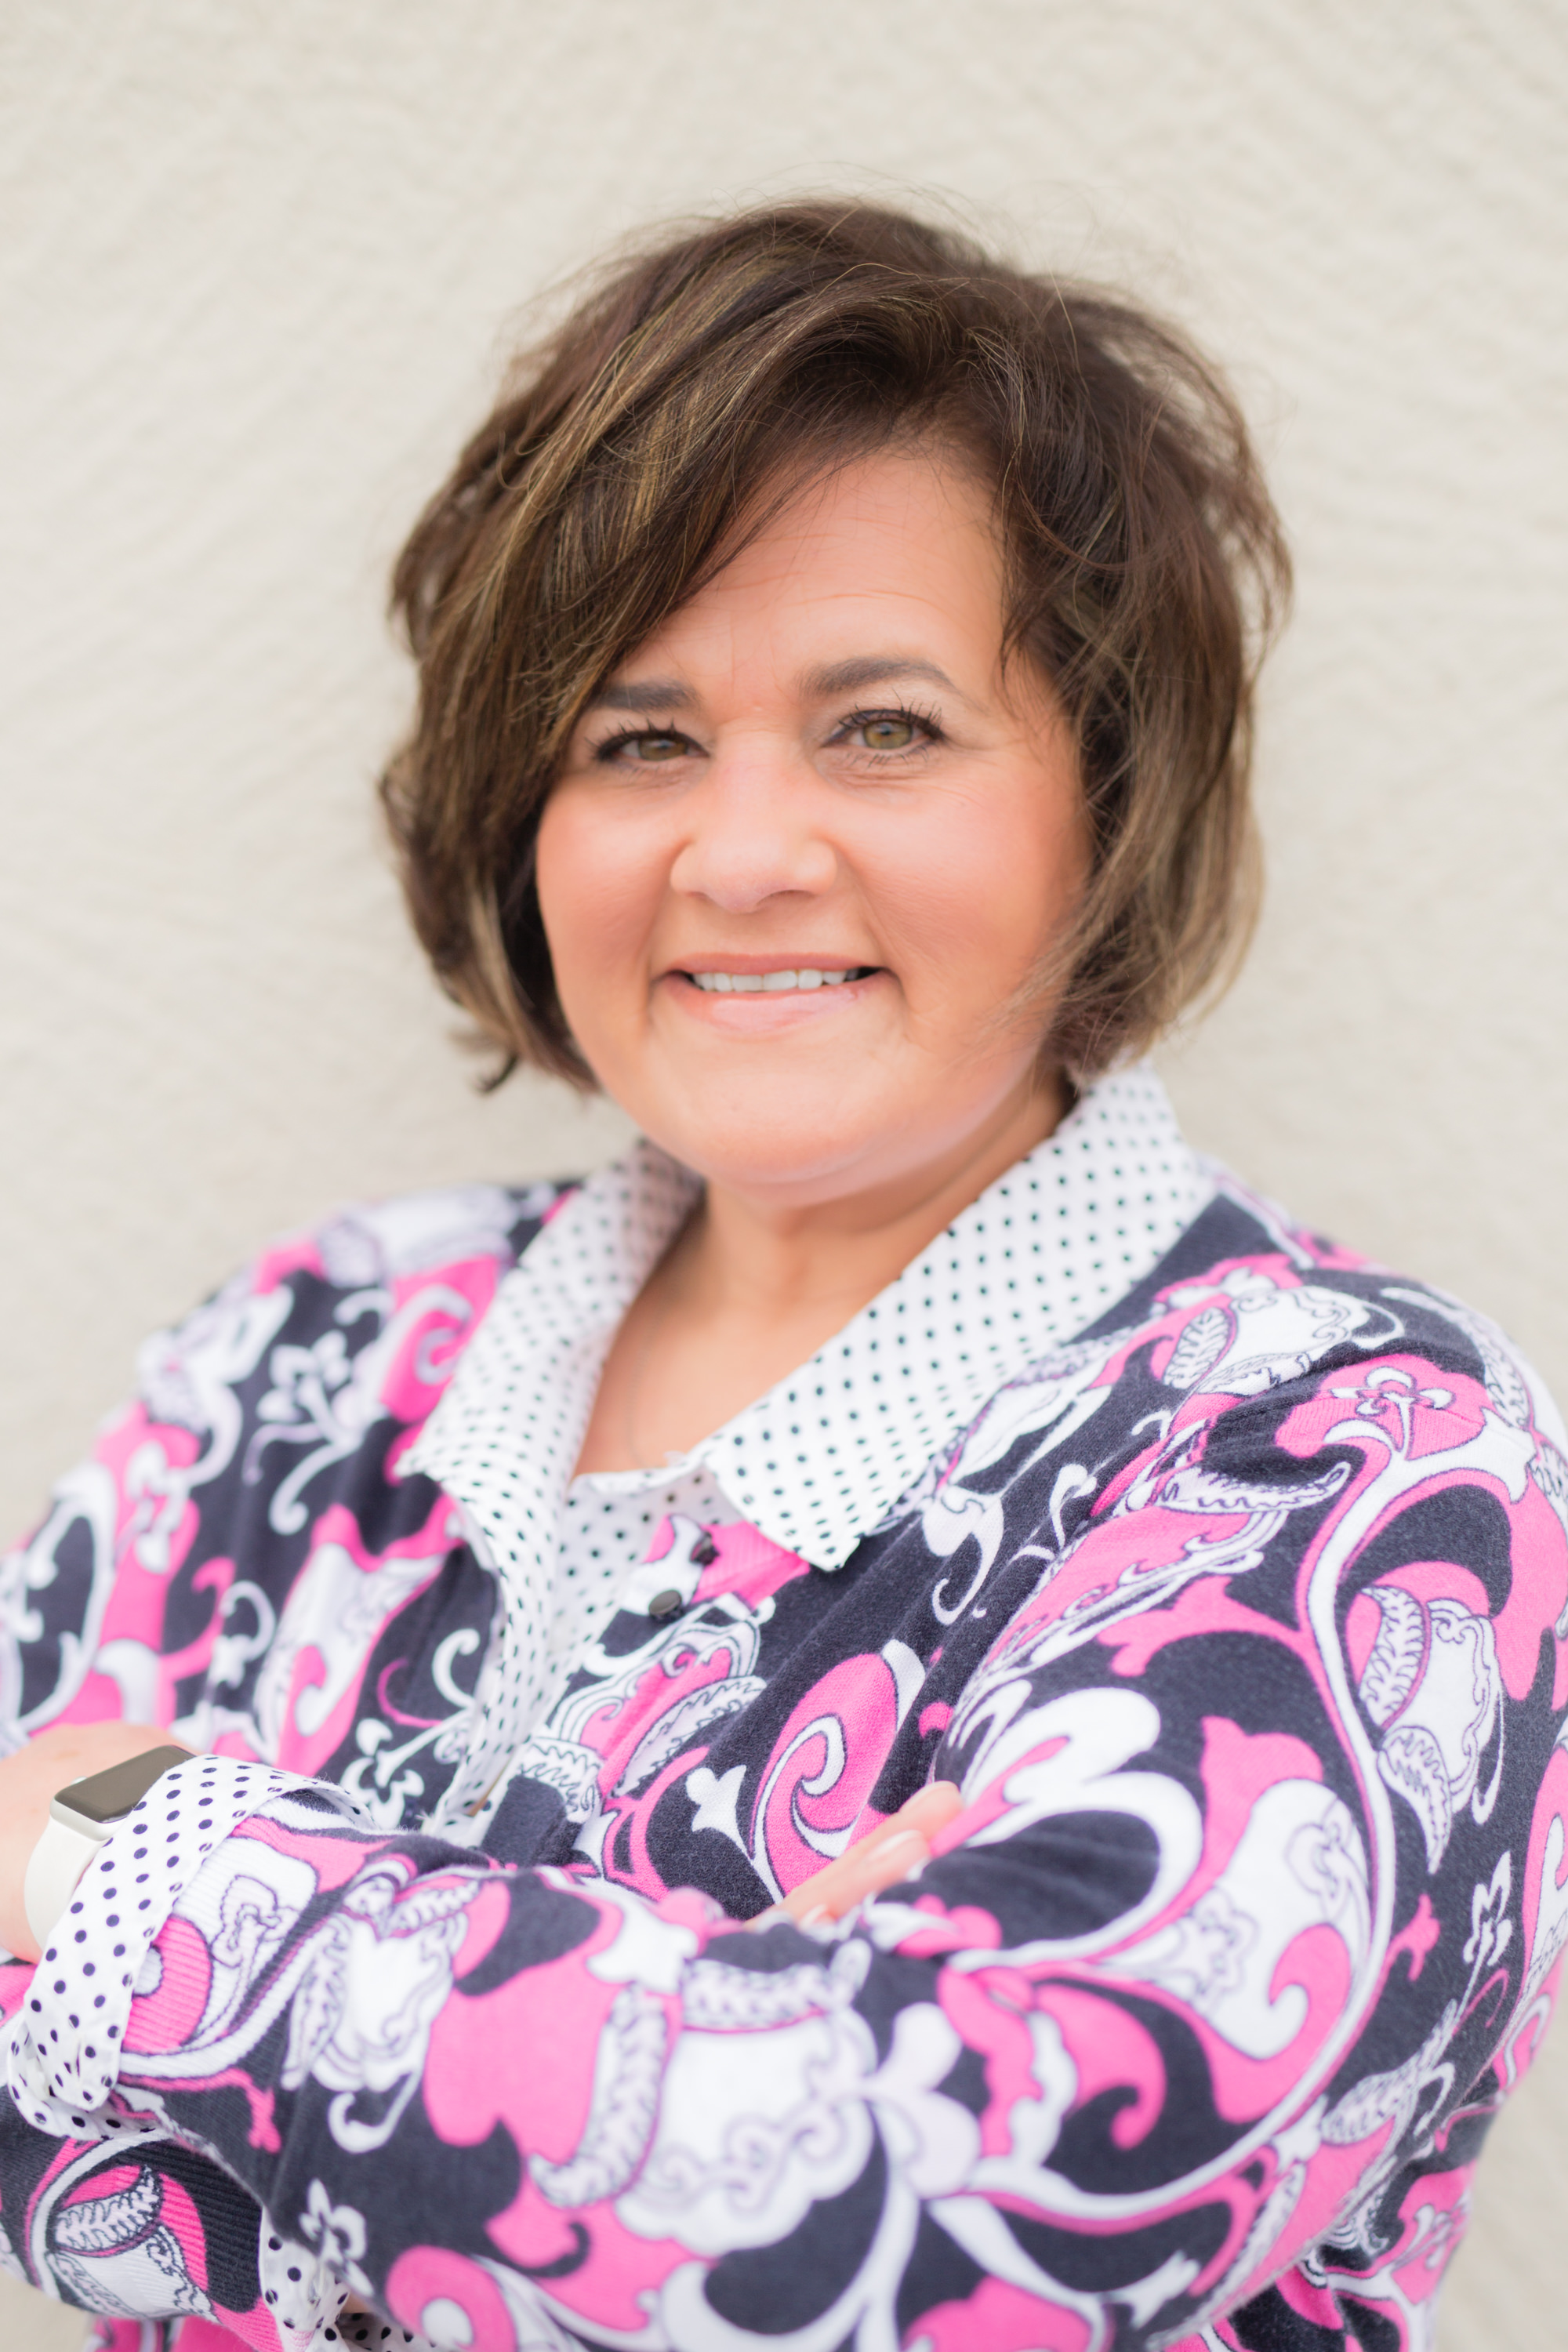 COURTNEY CLUCK  Manager Inside Sales - 29 years  courtney@cherokeehose.com